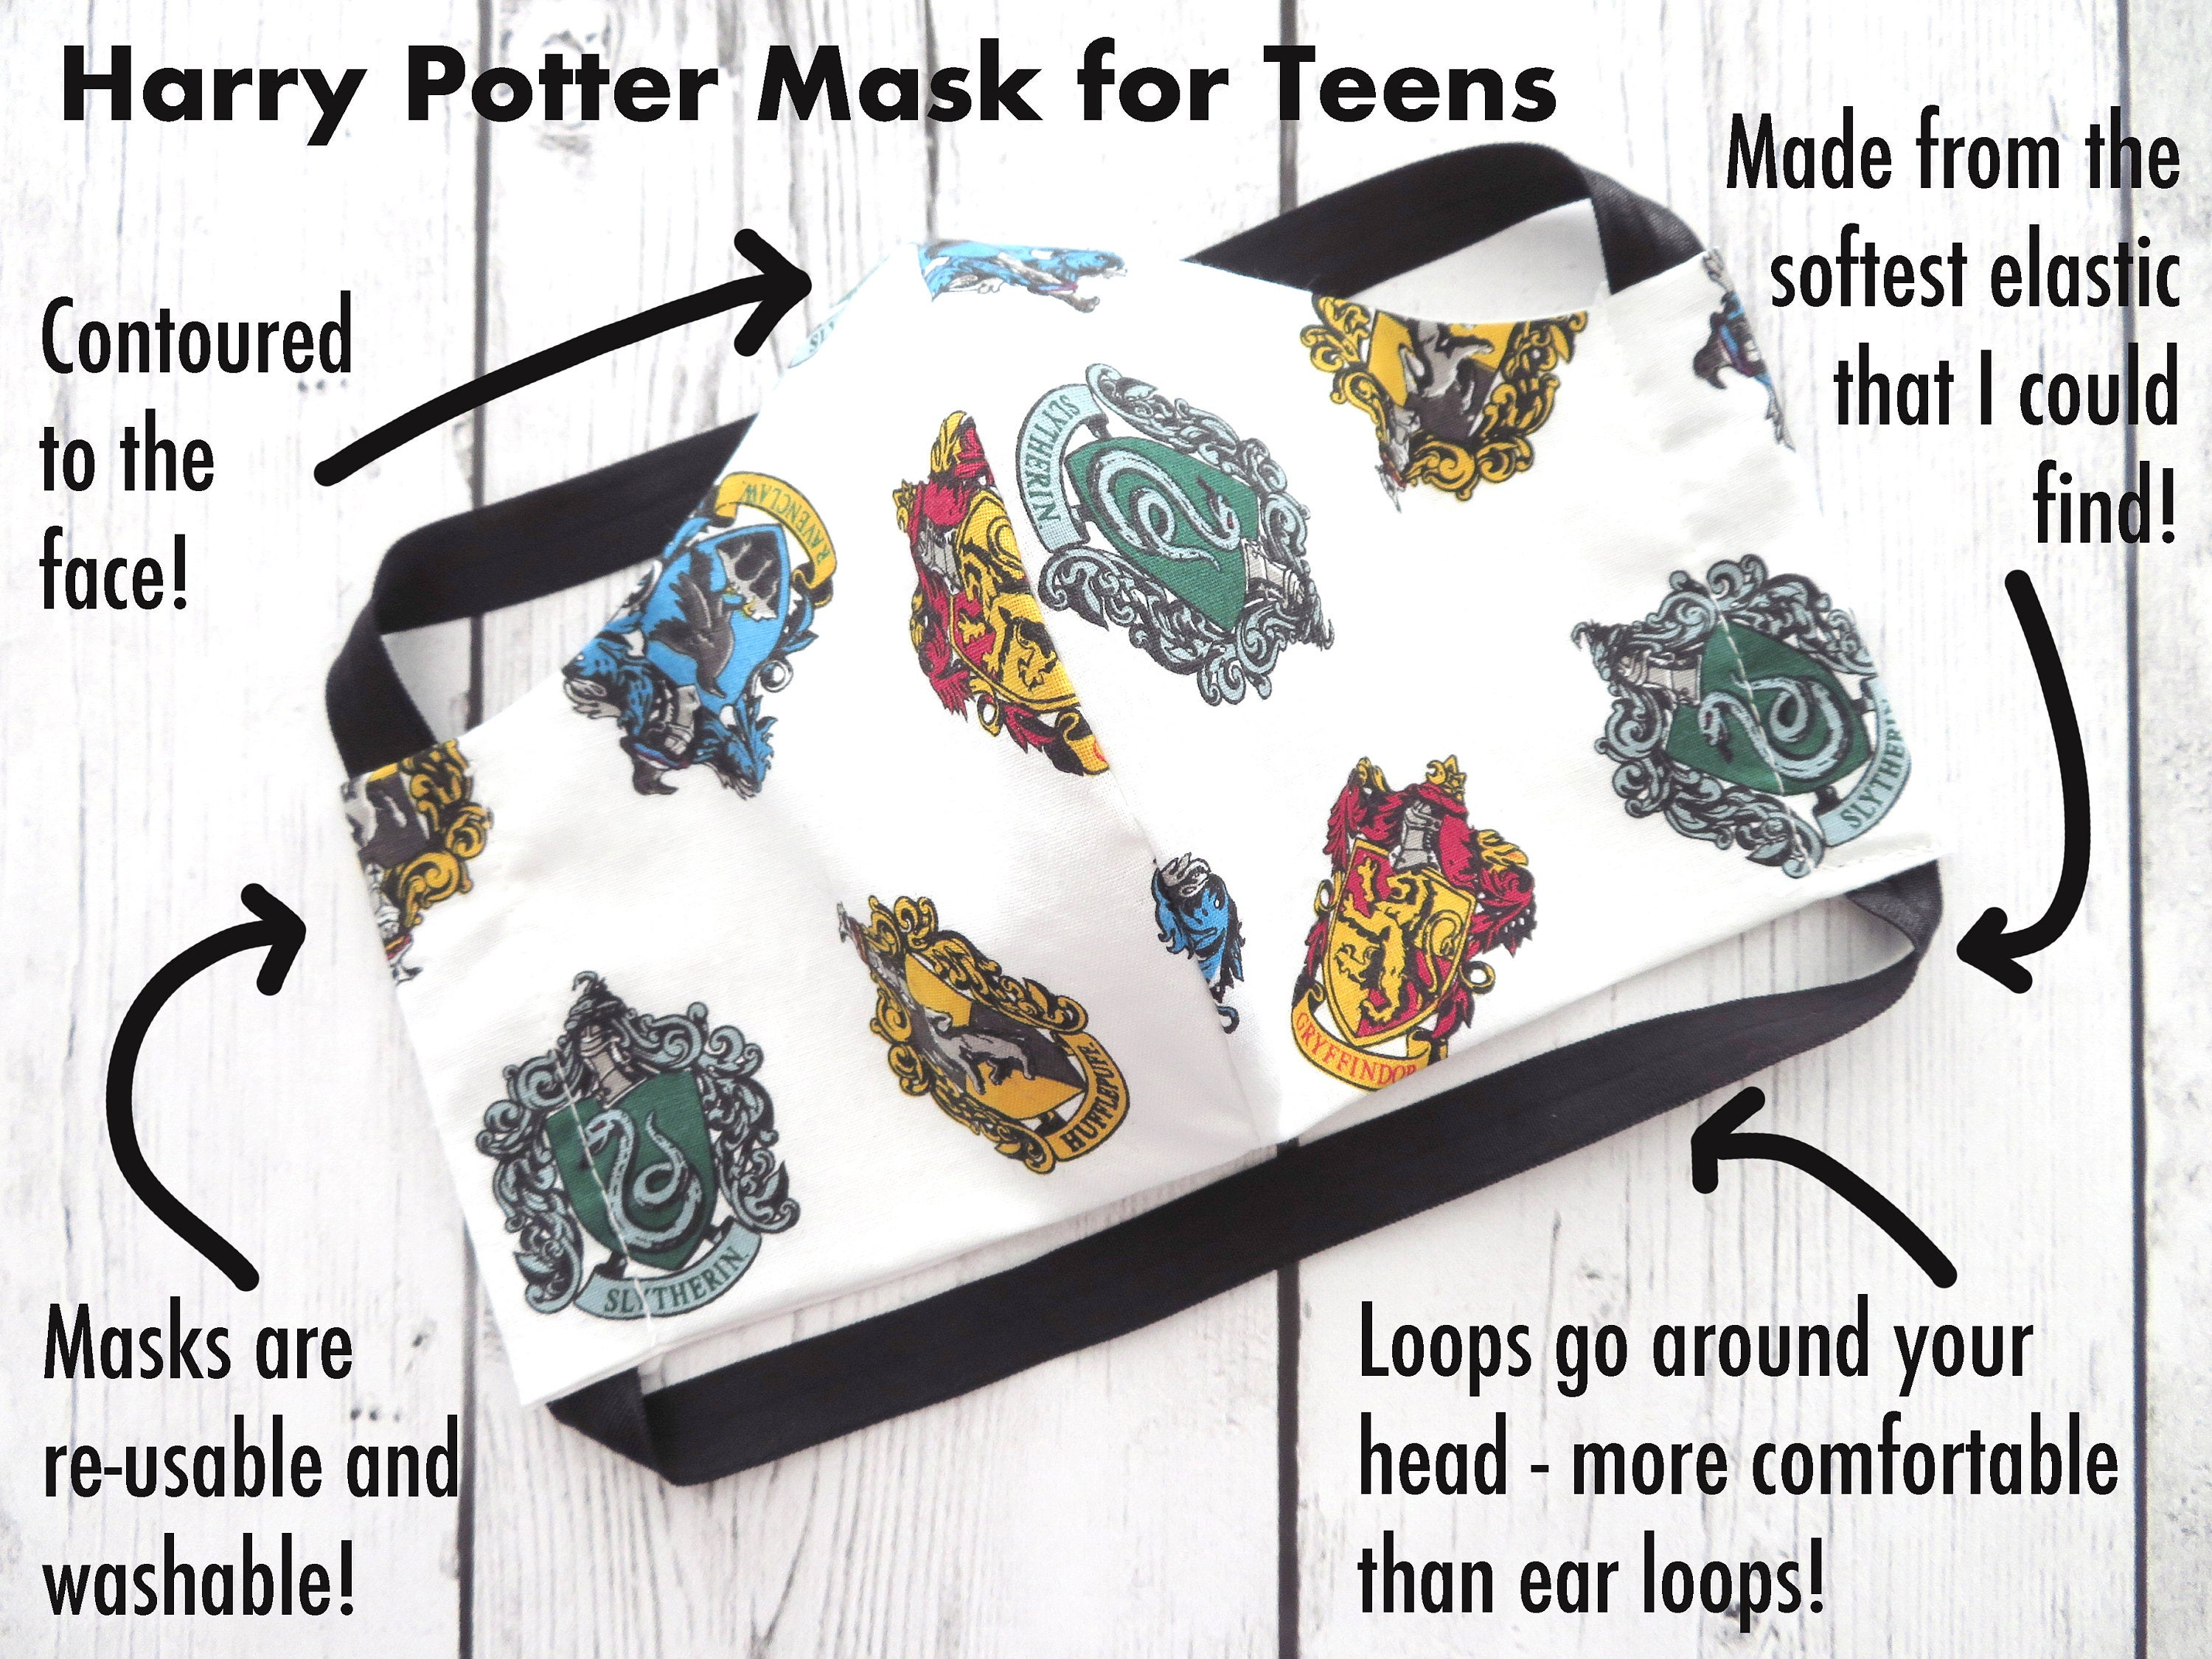 Harry Potter TEEN (Ages 9-15) Face Mask - handmade cotton, washable & re-usable, comfortable head elastic, teenager face mask, gryffindor